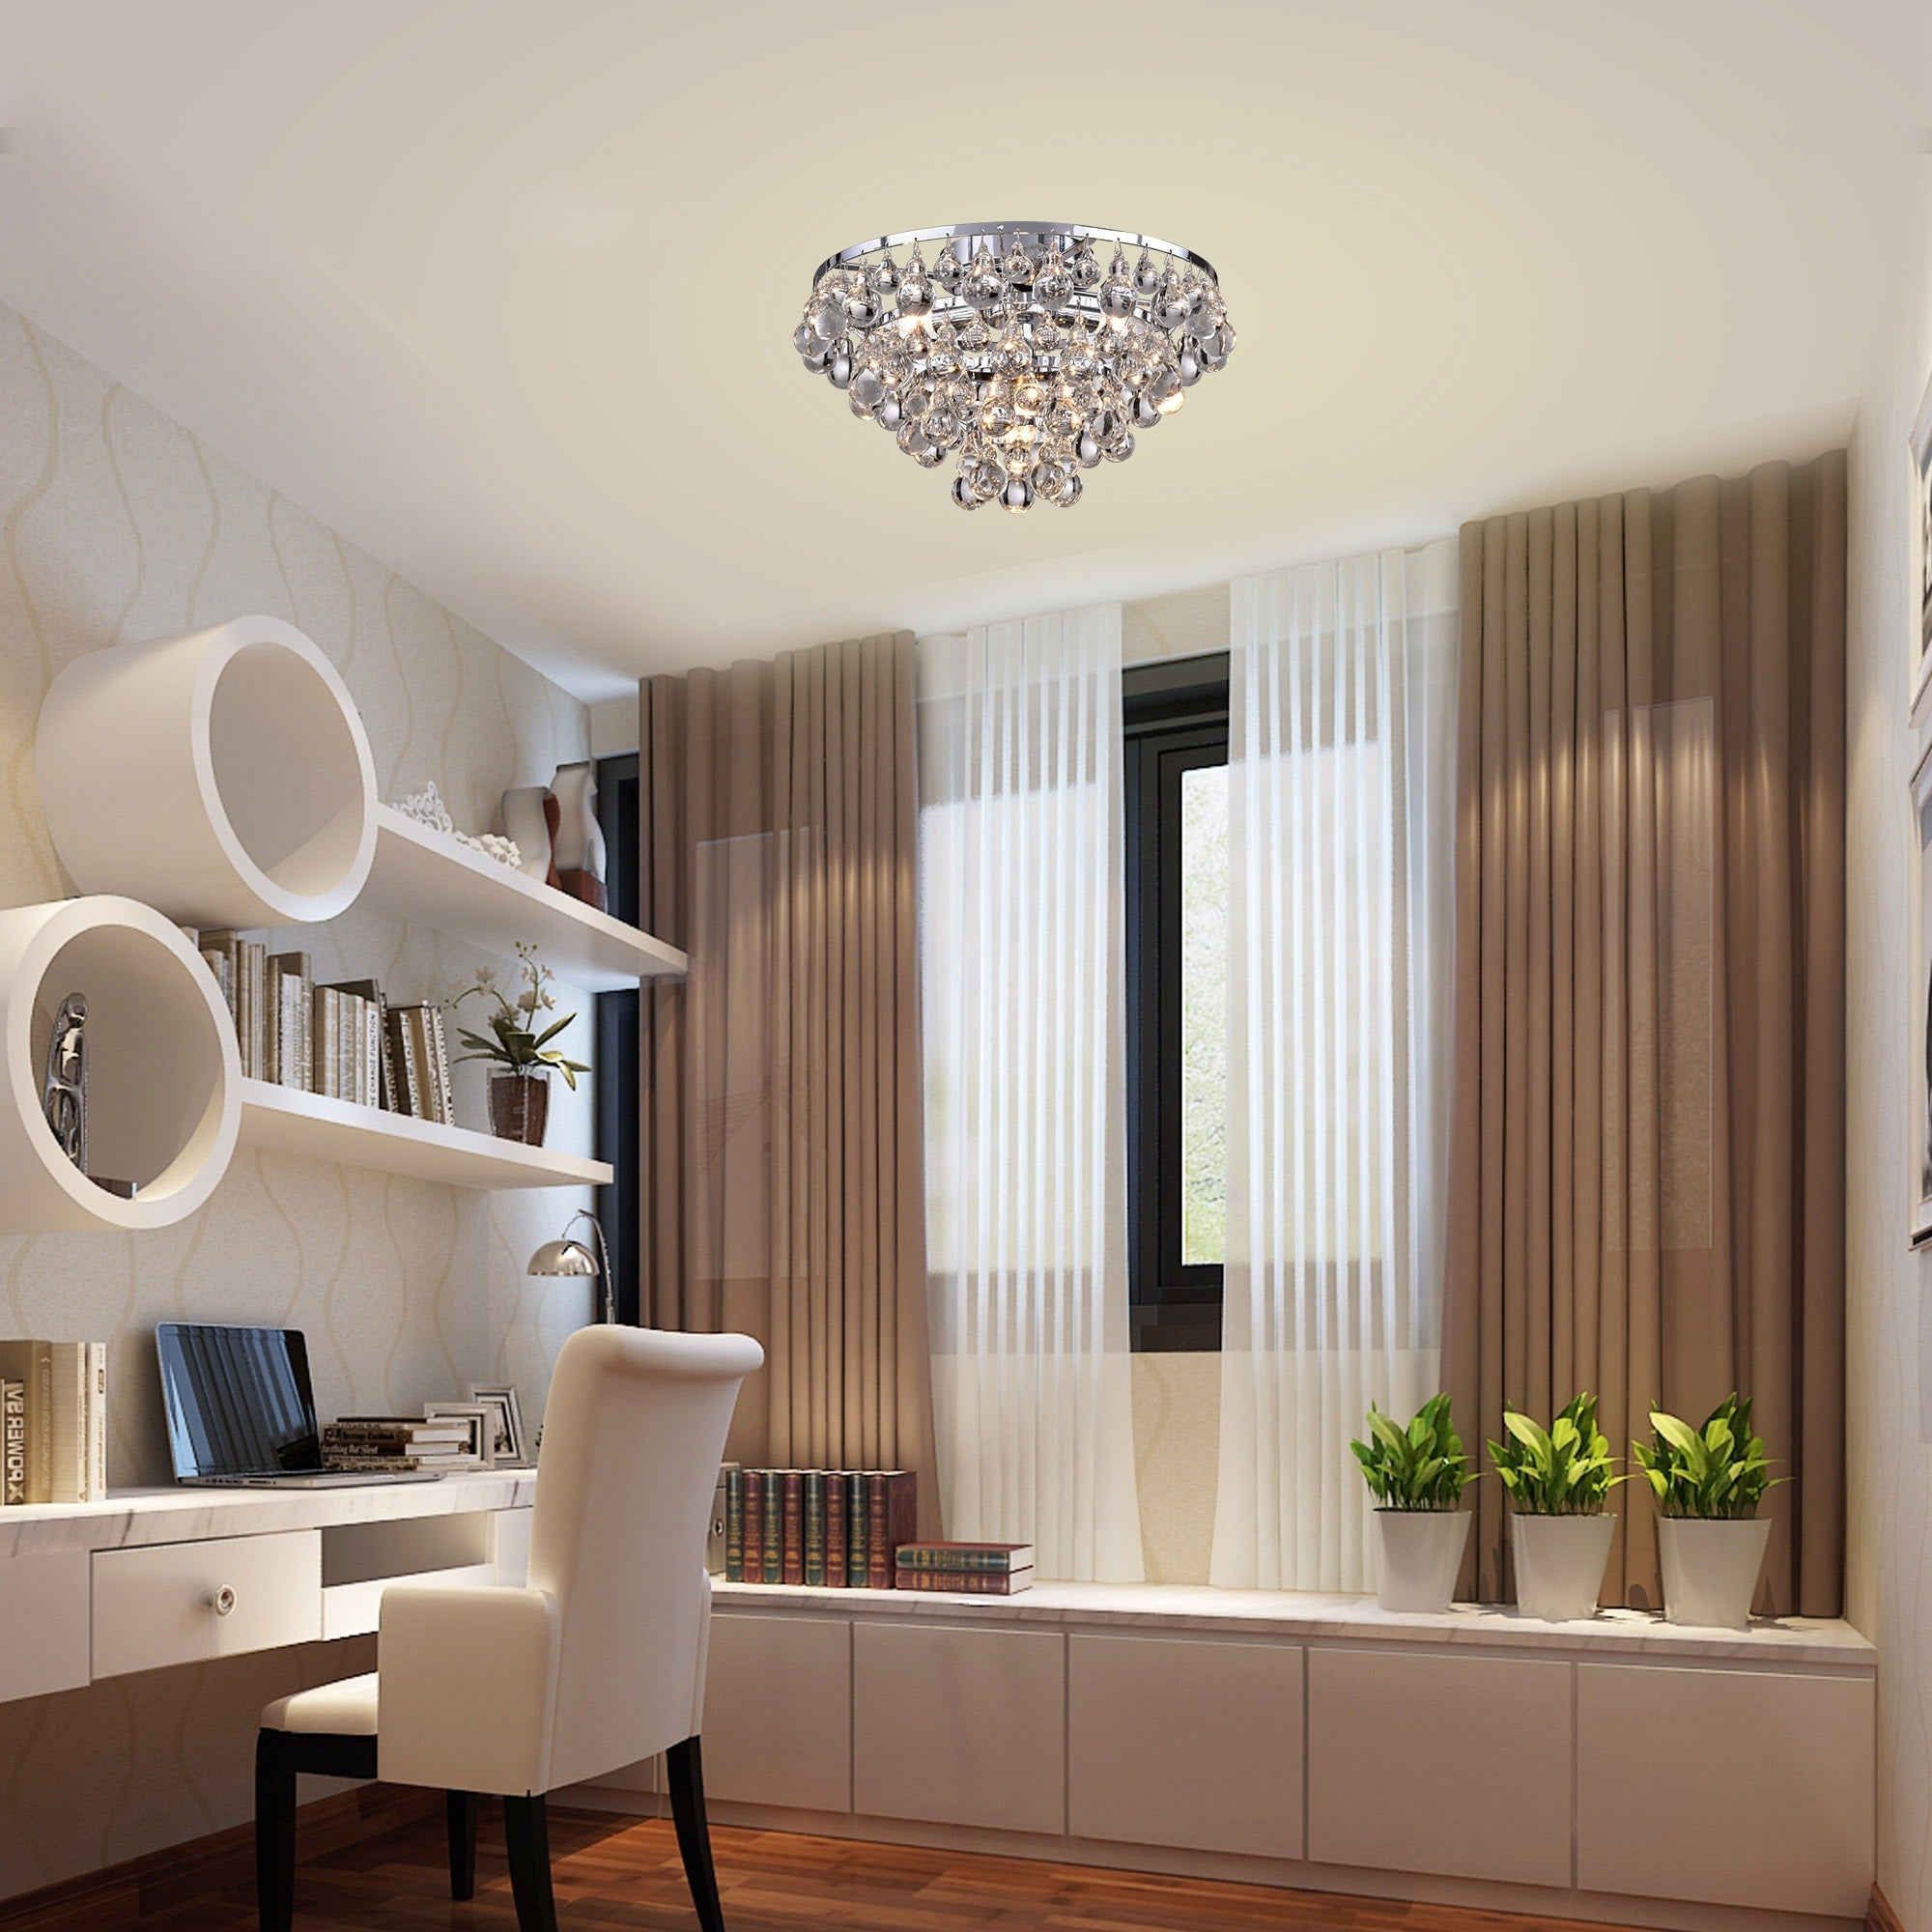 Tranquil Crystal Bubble and Chrome Flush mount Chandelier Free